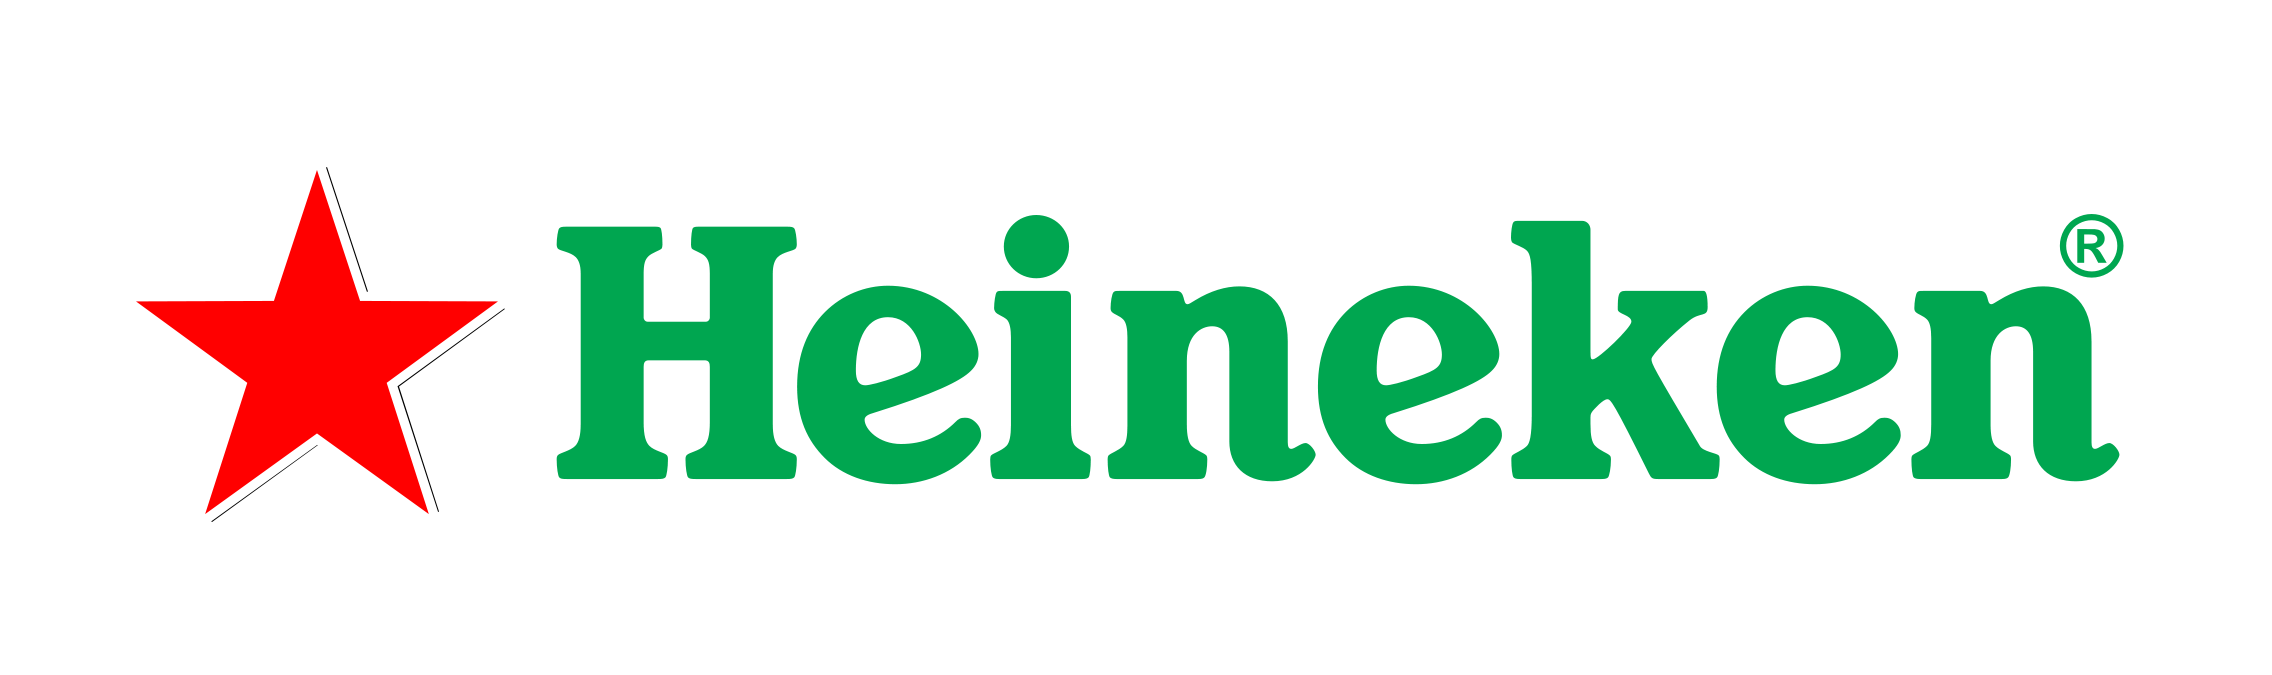 Heineken logo heineken symbol meaning history and evolution there are several customized typefaces used within the heineken emblem in the second half of the previous century the capital letters were replaced by more buycottarizona Choice Image